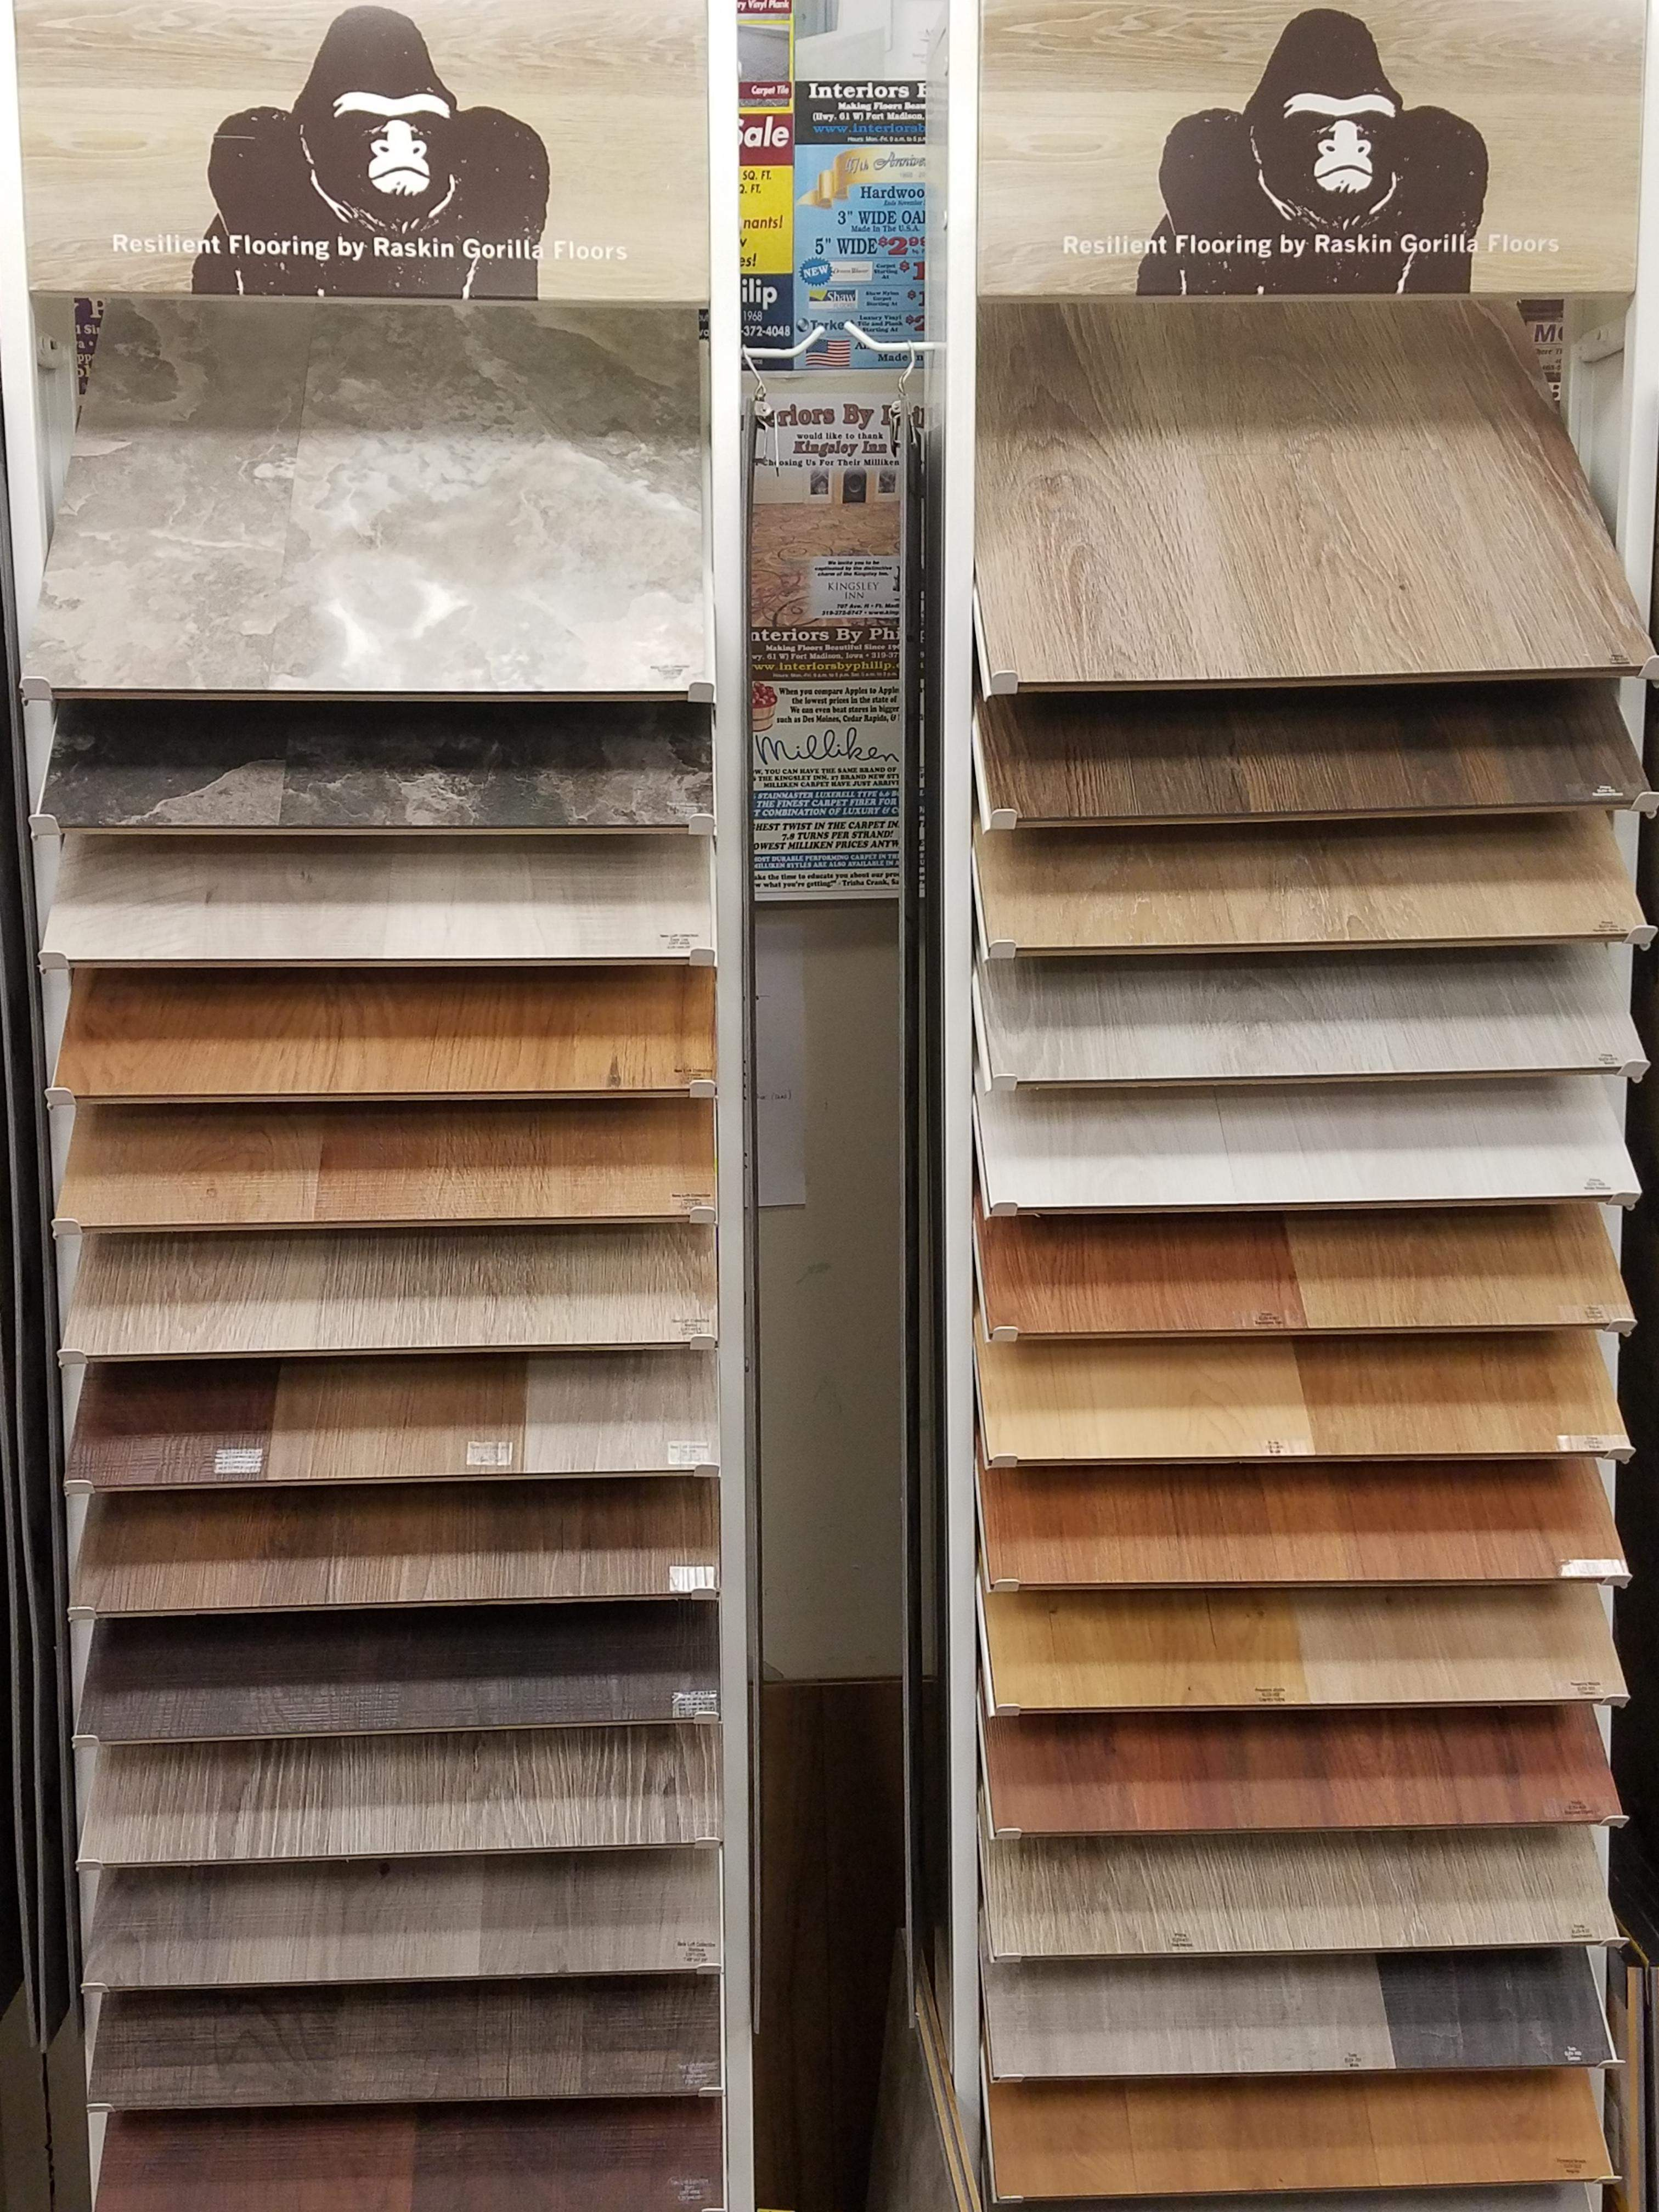 Luxury Vinyl Tile And Plank - Congoleum duraceramic vs armstrong alterna